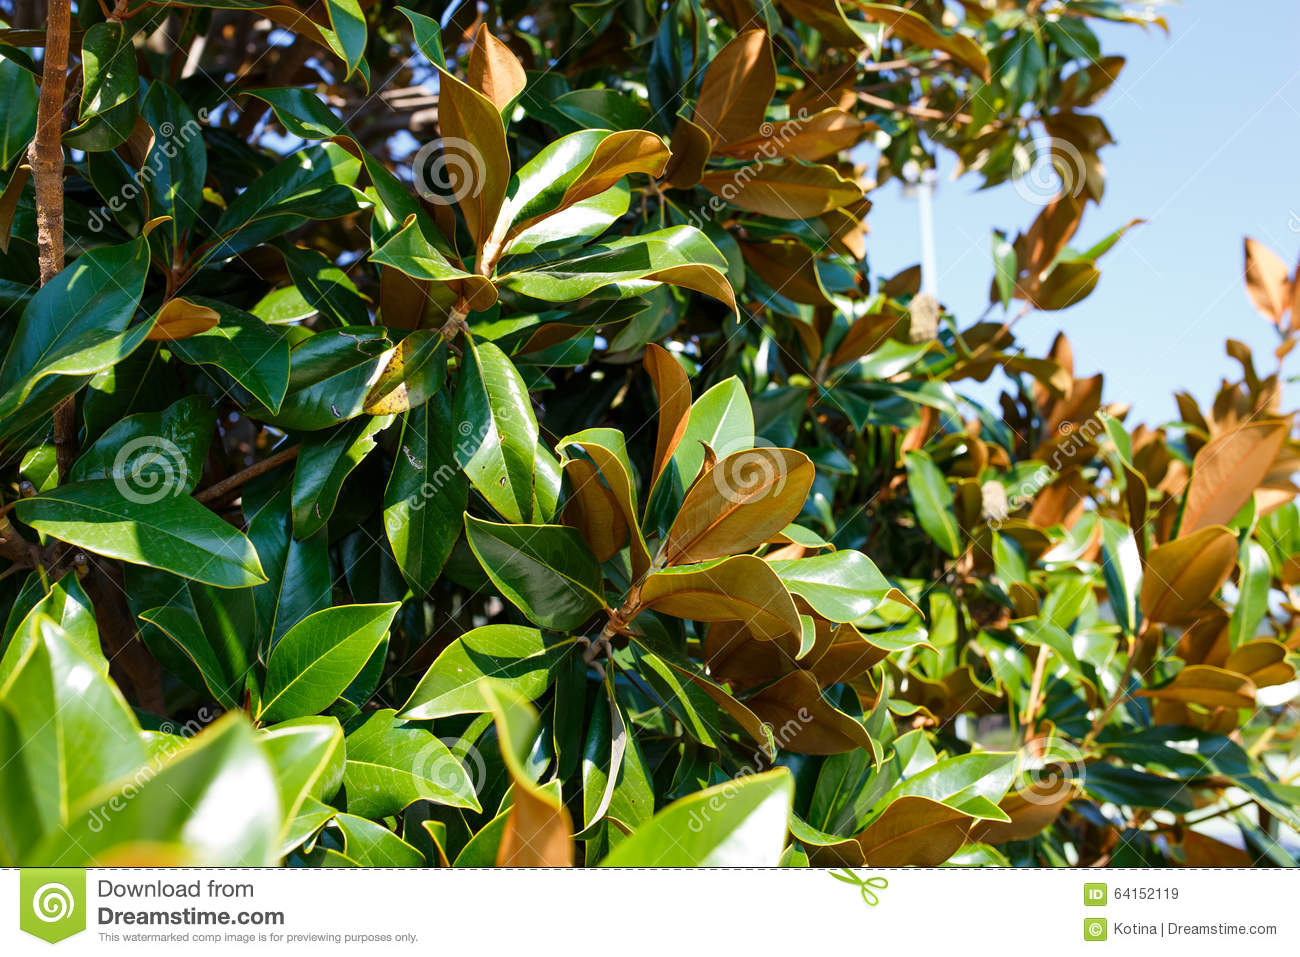 Magnolia Tree Branches Without Flowers In Autumn Stock Image - Image ...